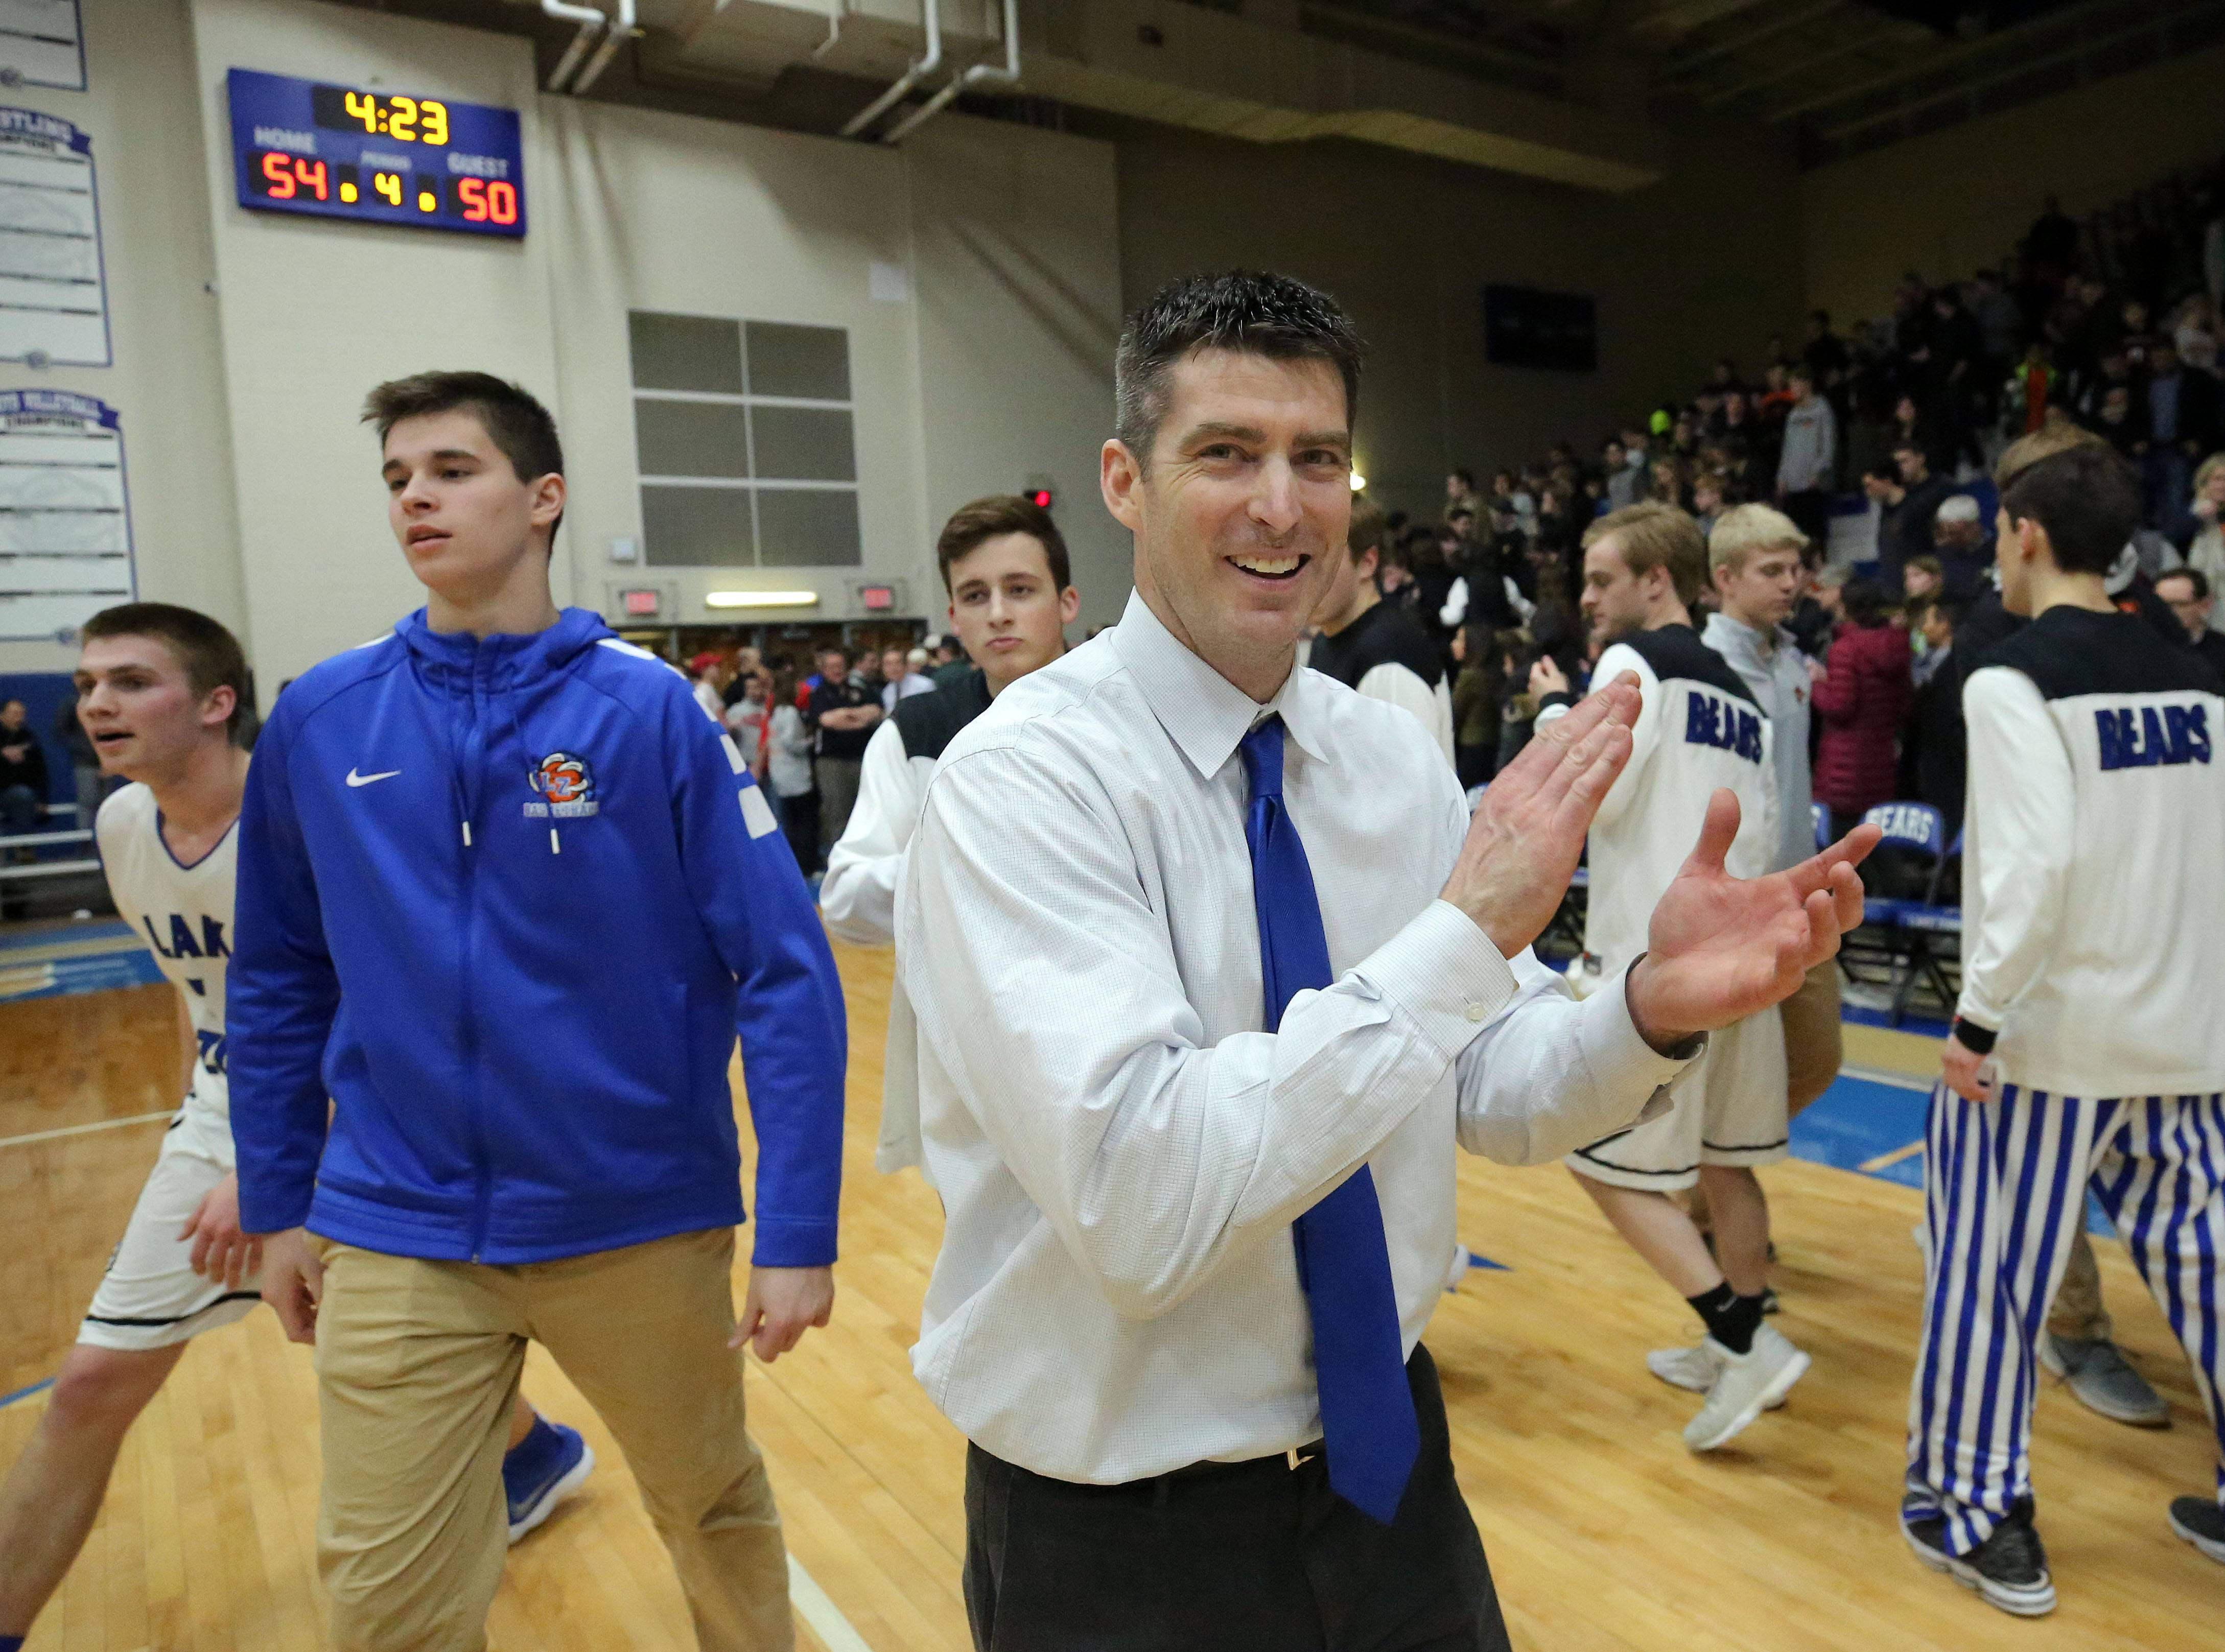 Lake Zurich coach Billy Pitcher celebrates after the Bears' 54-50 win over Libertyville in Class 4A sectional semifinal play at Lake Zurich.